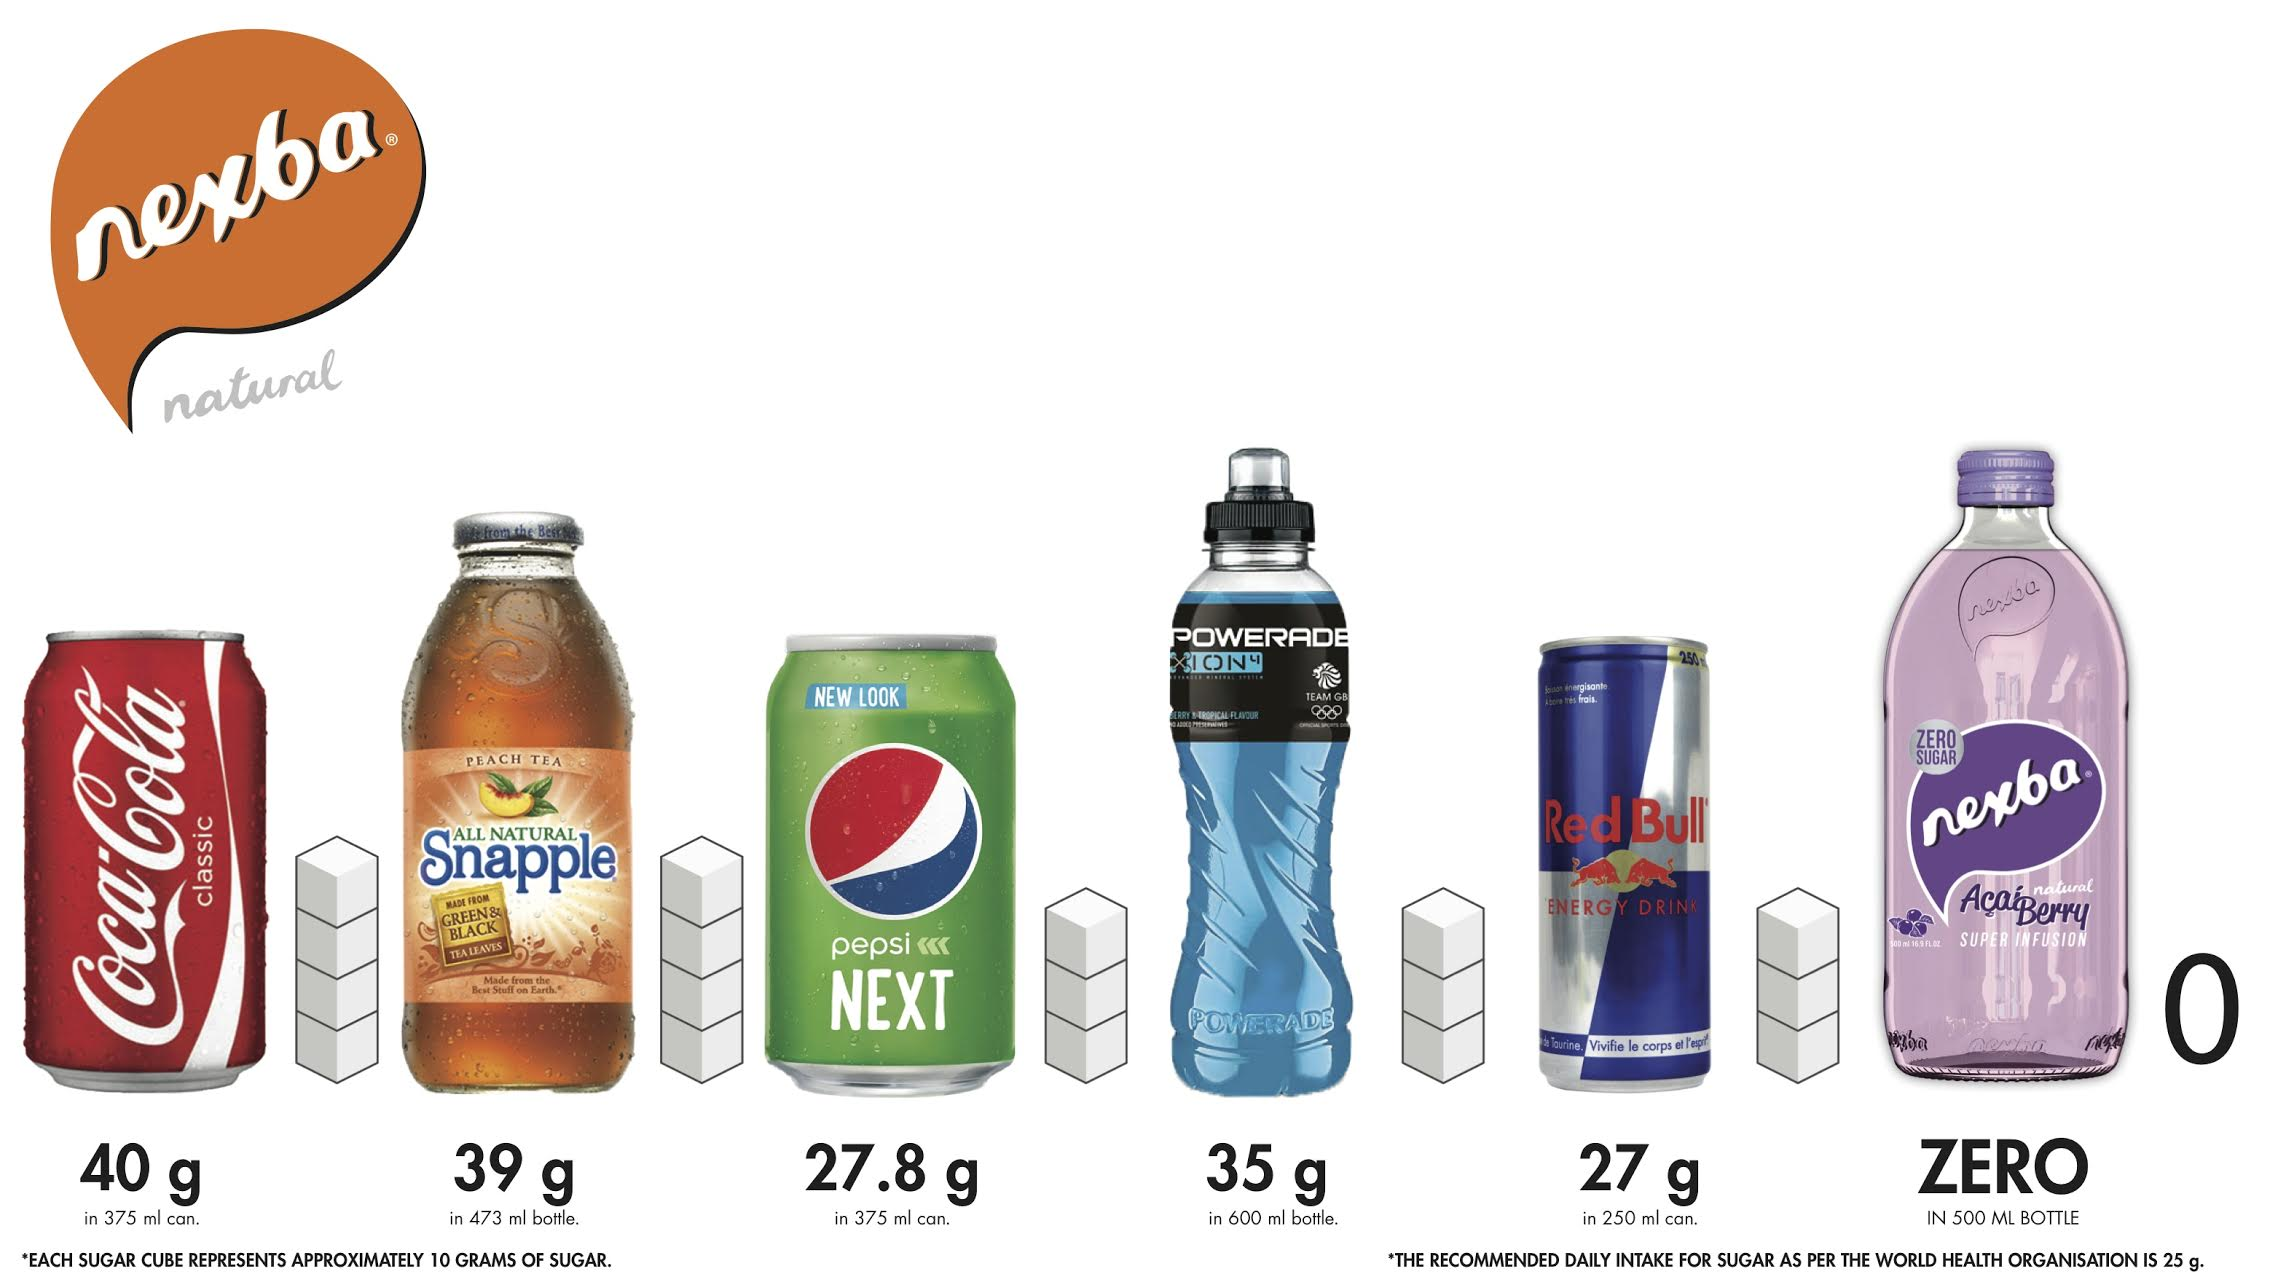 nexba sugary drinks infographic